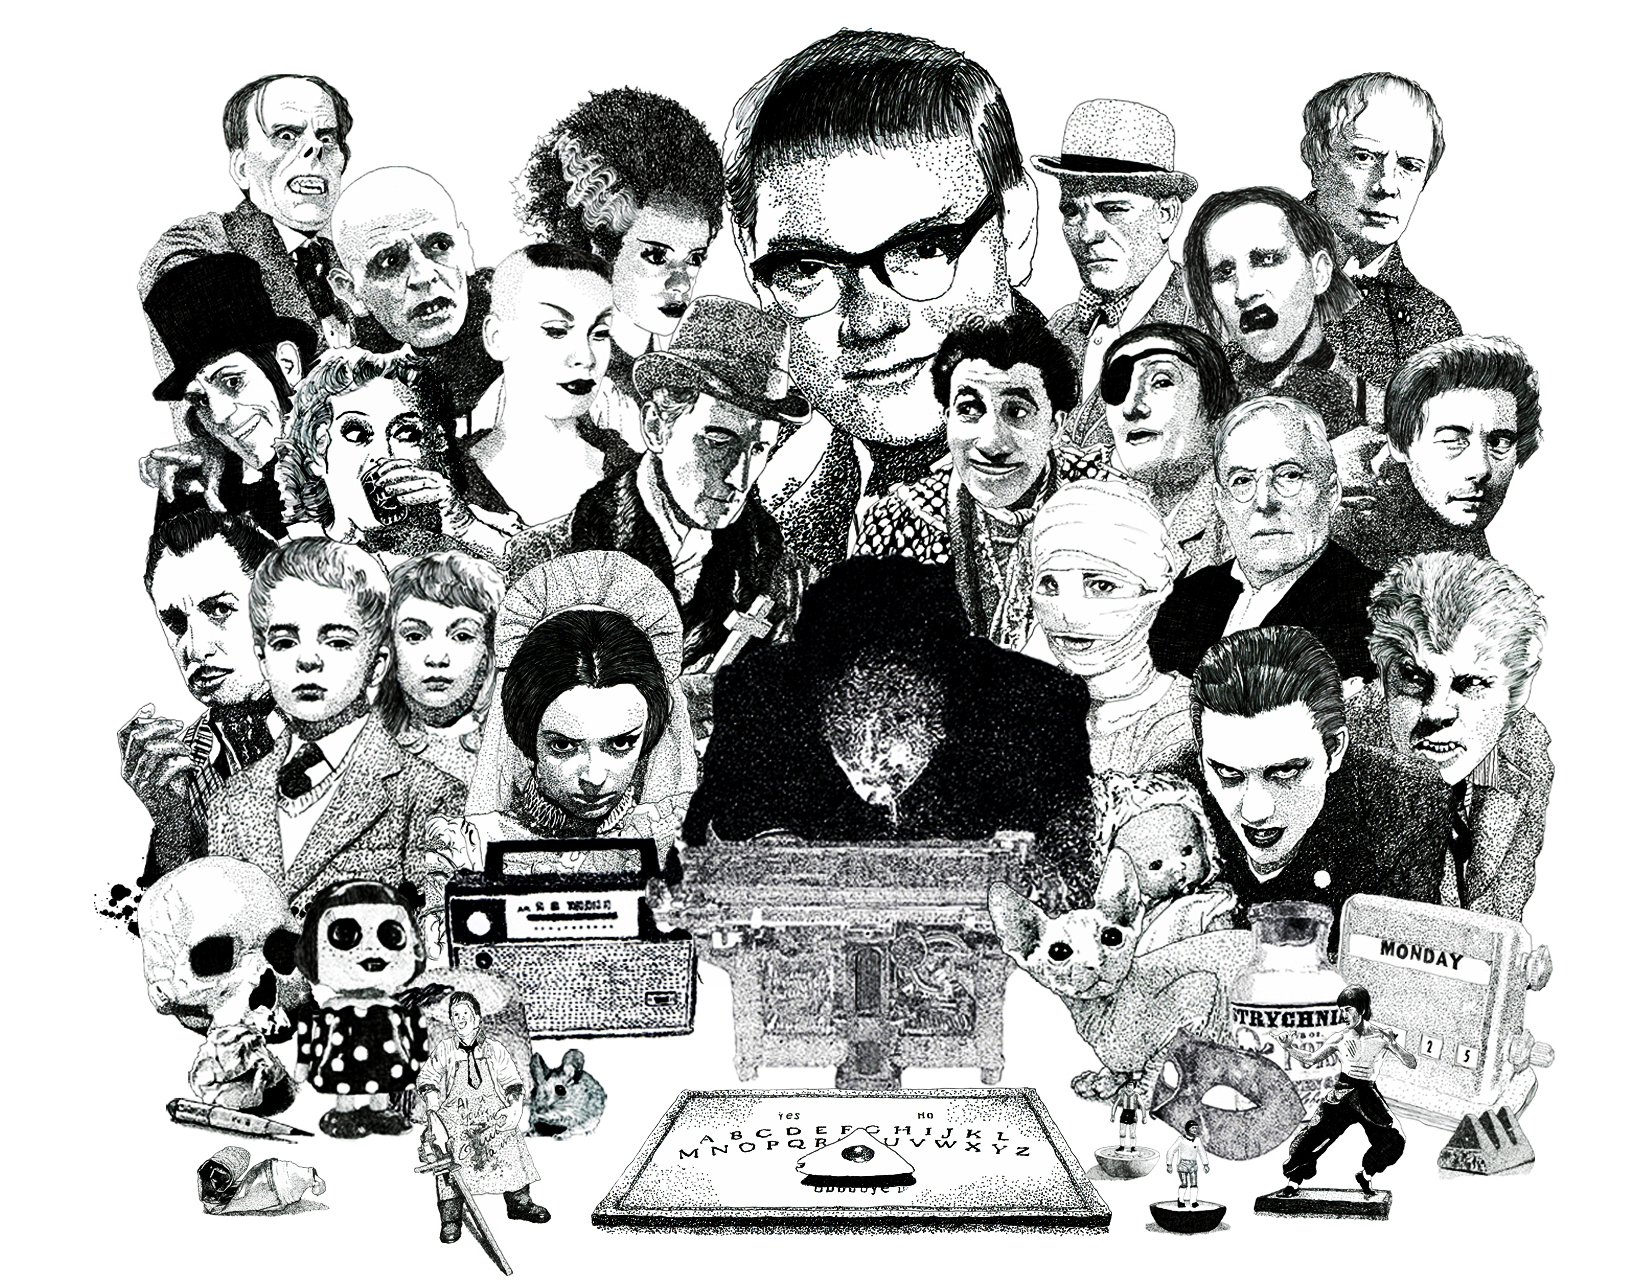 Psychic Investigator Hamilton Coe surrounded by horror icons. Featured characters include M.R. James, Dave Vanian, Lon Chaney, Marilyn Manson, Arthur Machen, Vampira, Peter Cushing, Barbara Steele, Bette Davis Elsa Lanchester, Bride of Frankenstein, Vincent Price, Children of the Damned